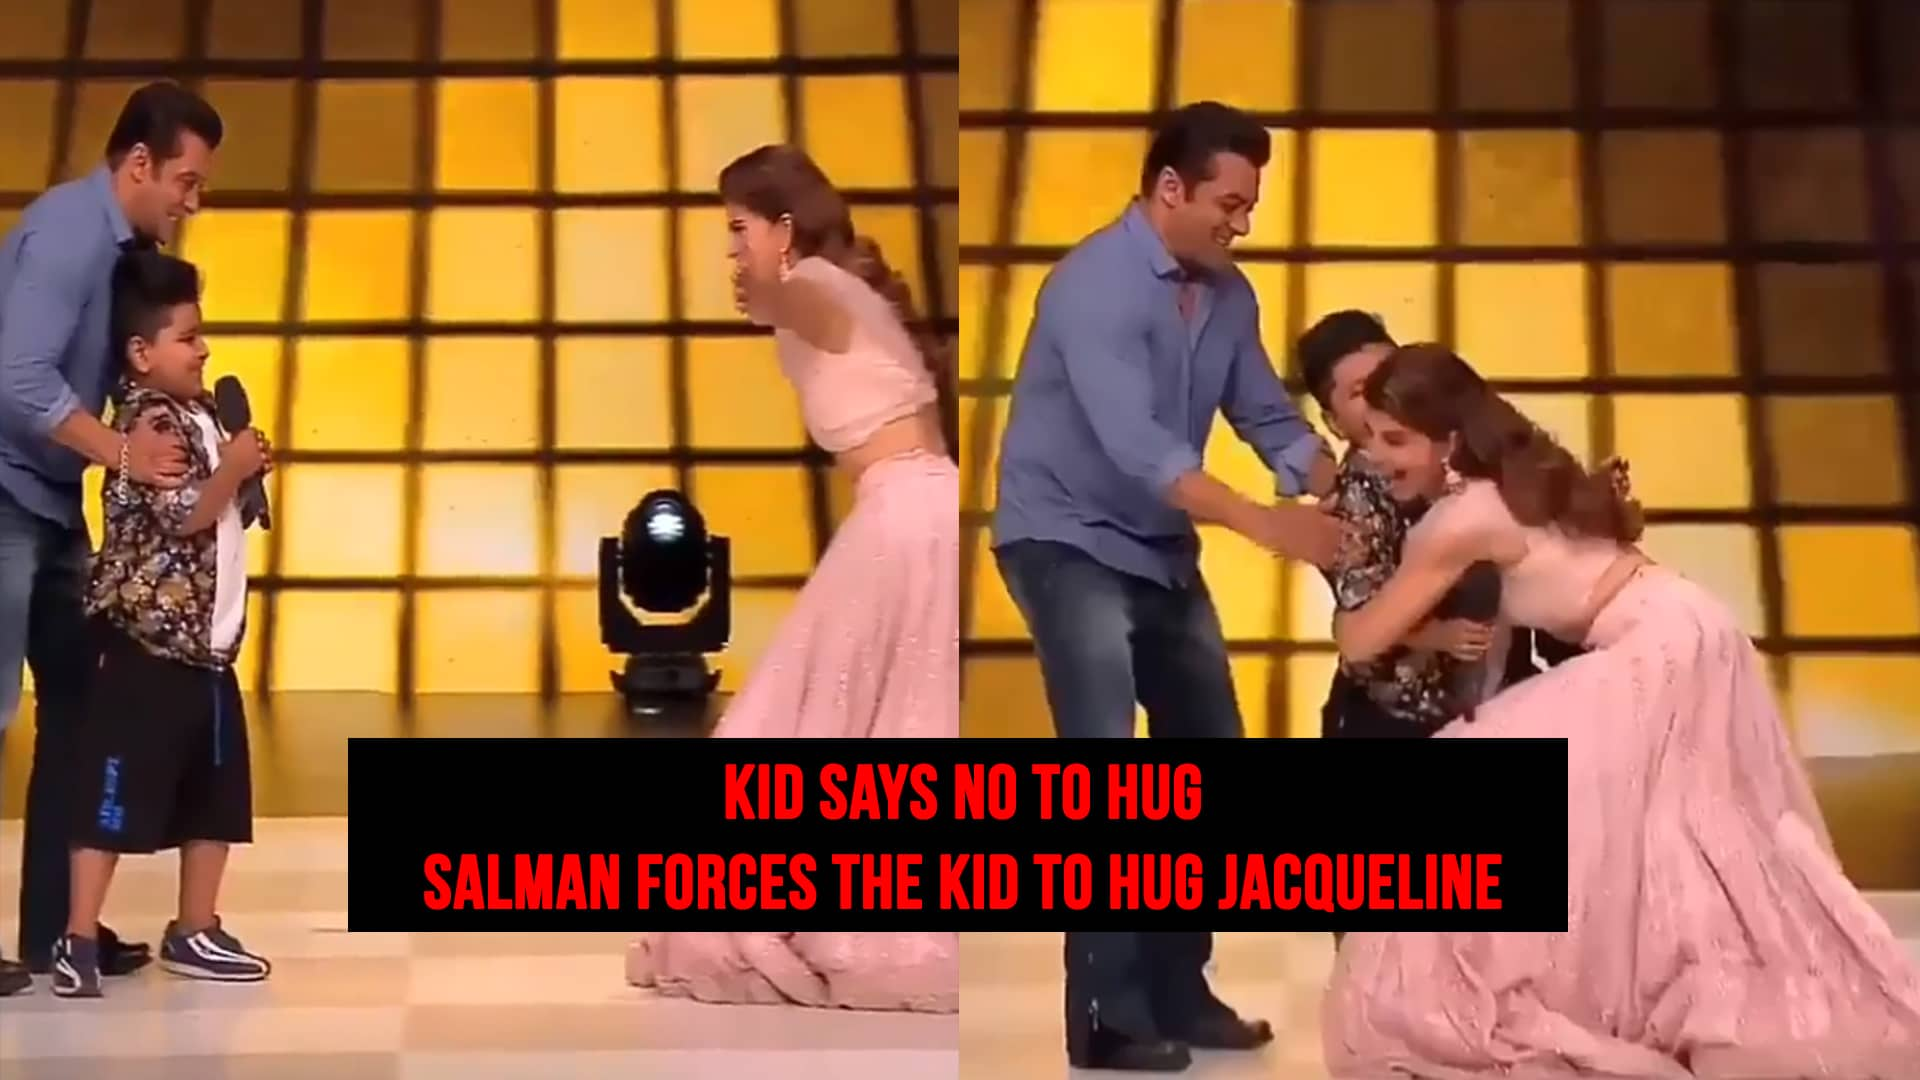 Twitter criticizes Salman for forcing a child to hug Jacqueline